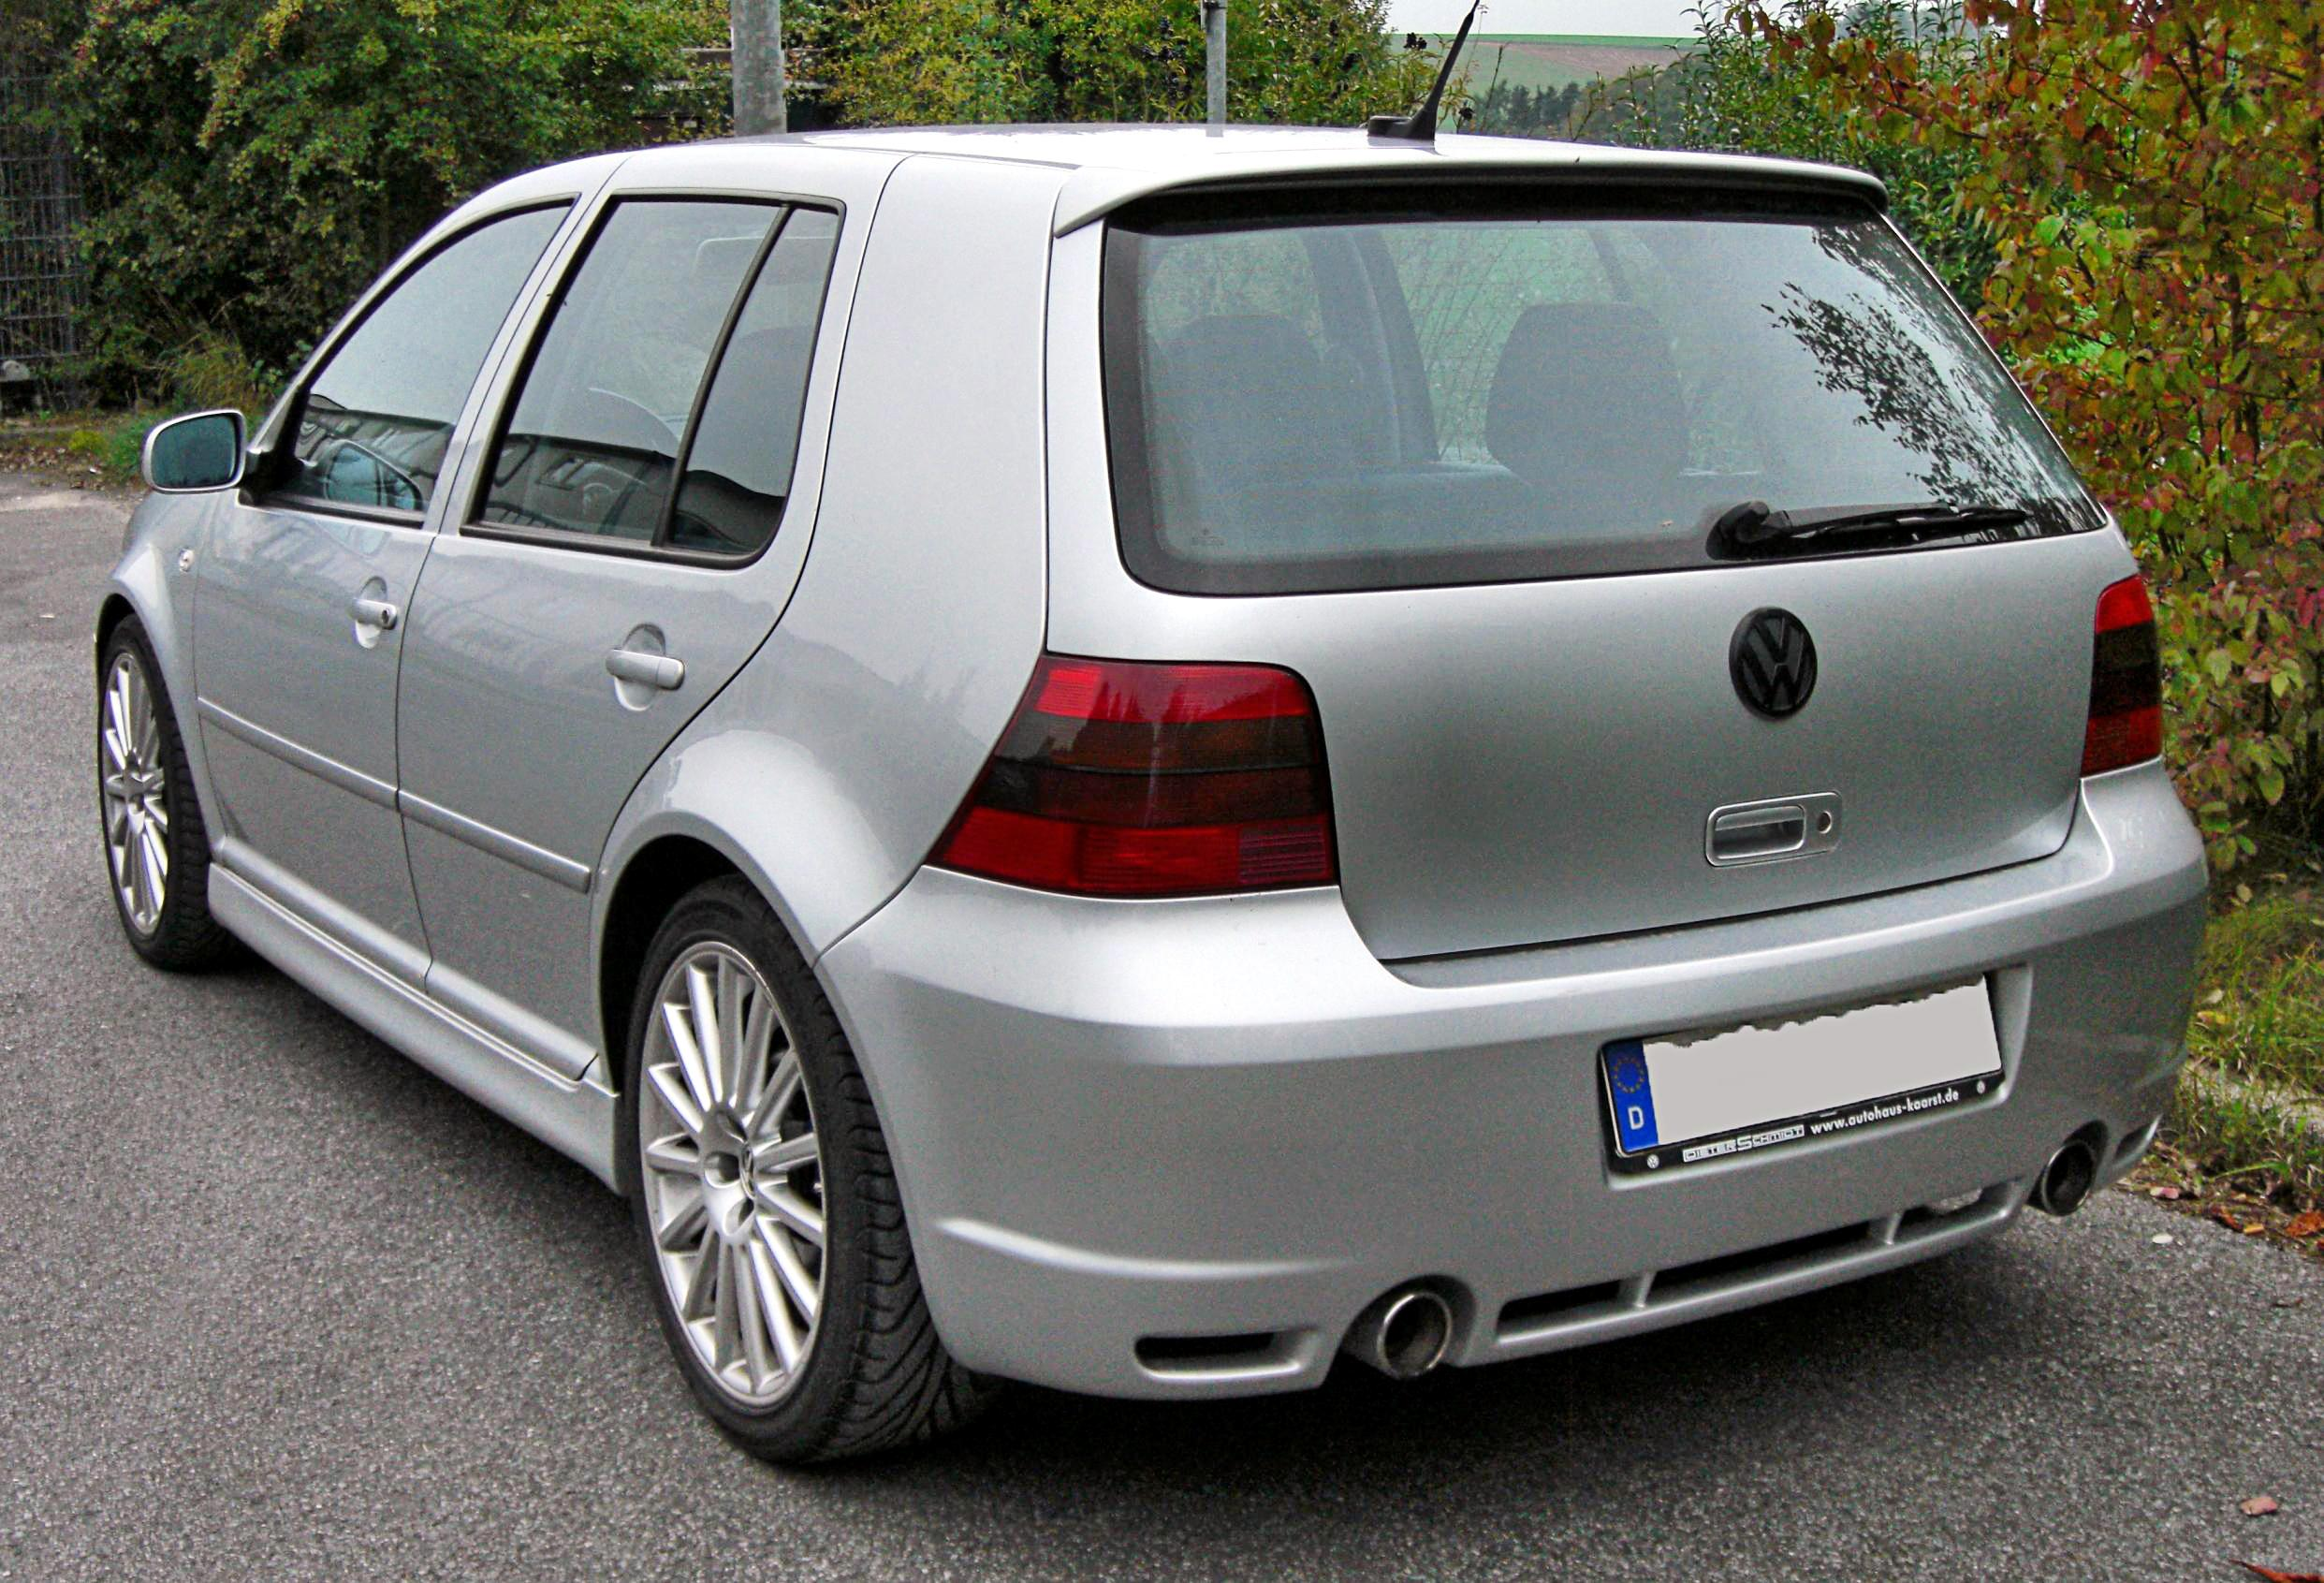 vw golf 4 r32 technical details history photos on better parts ltd. Black Bedroom Furniture Sets. Home Design Ideas